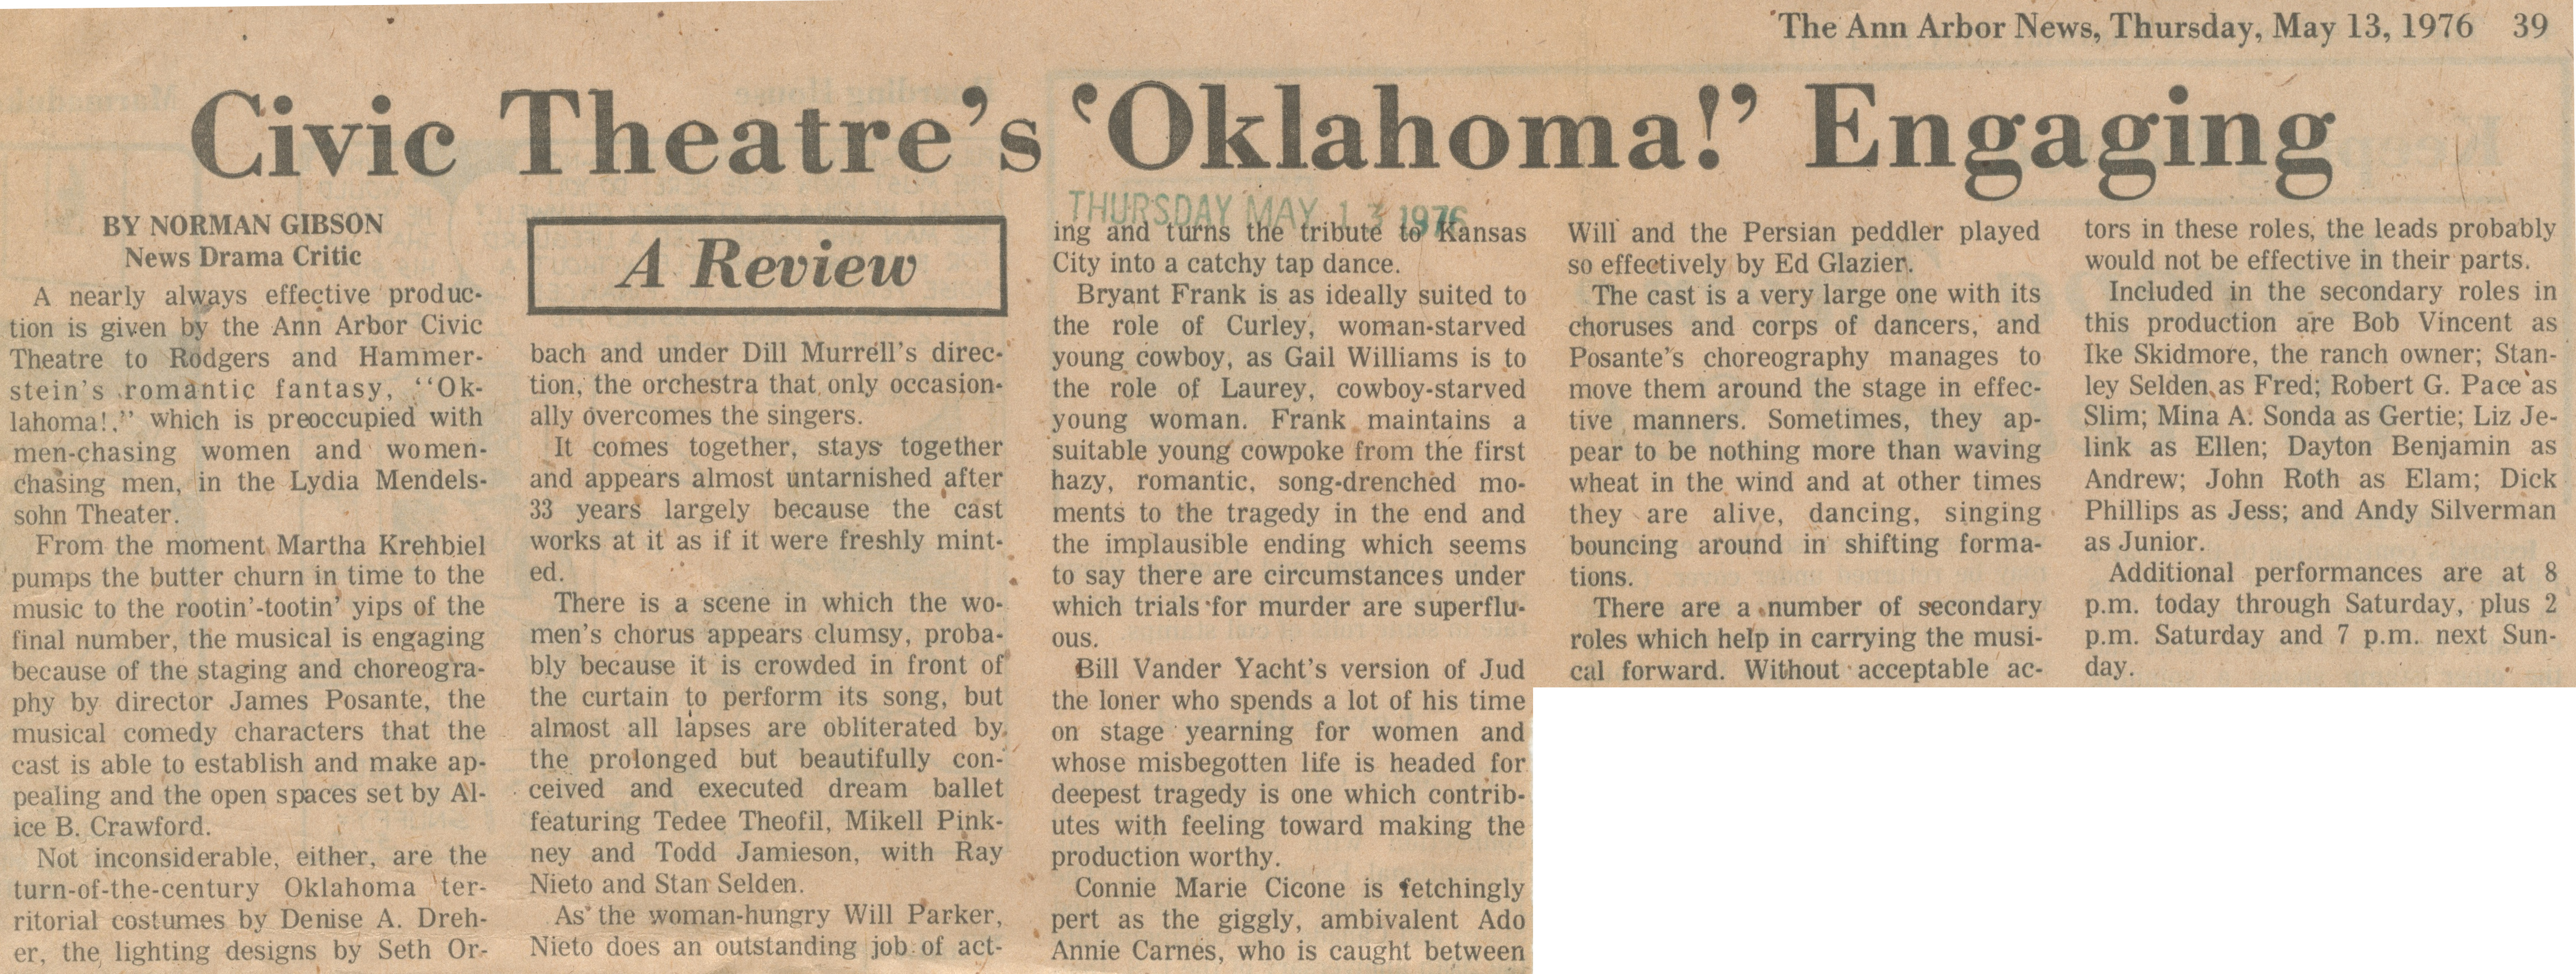 Civic Theatre's 'Oklahoma!' Engaging image